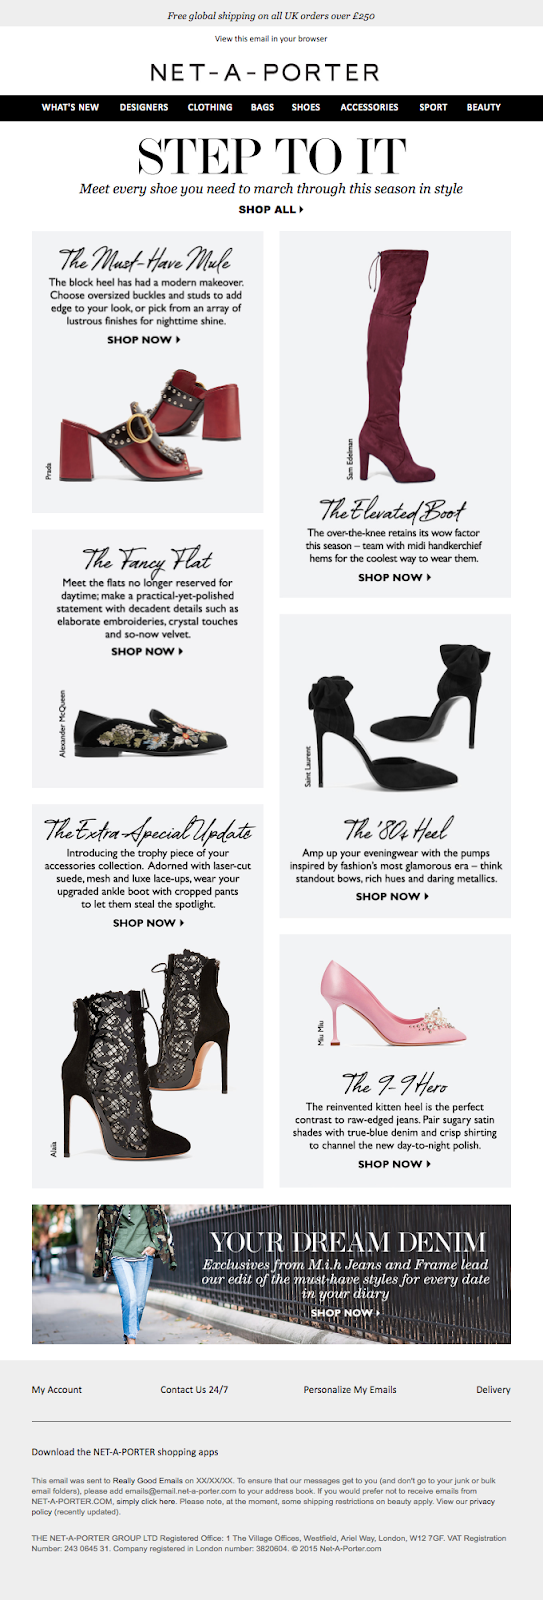 Another great reason to use web-fonts is that they help you create and portray a brand's online personality. Here's a great example from Net-A-Porter.